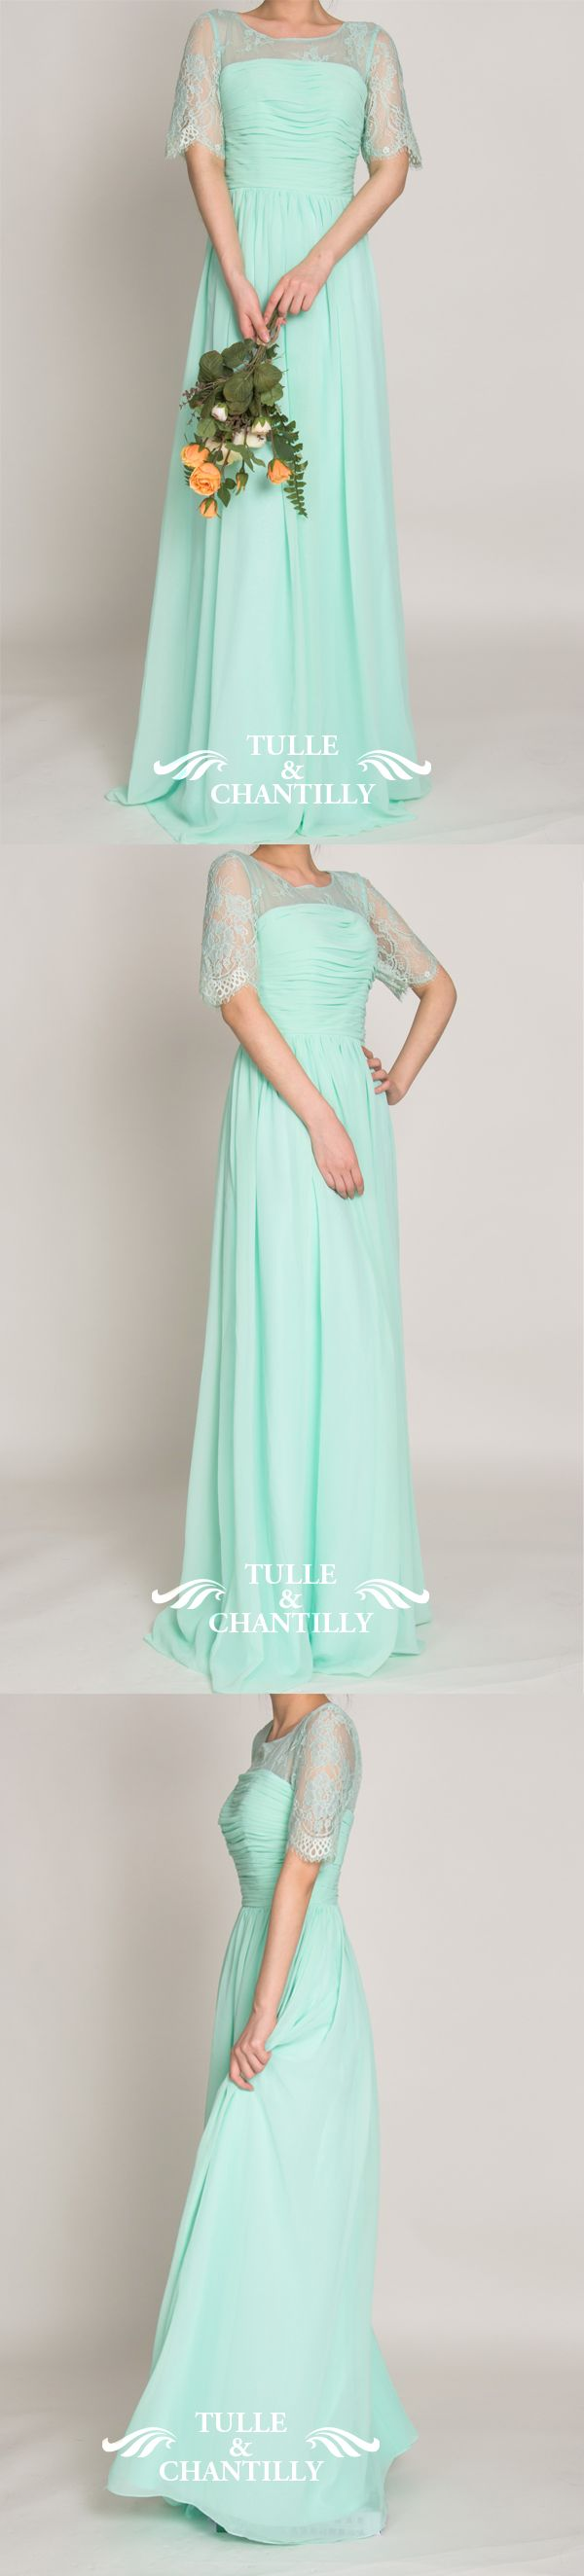 mint blue lace bridesmaid dress with chiffon skirt